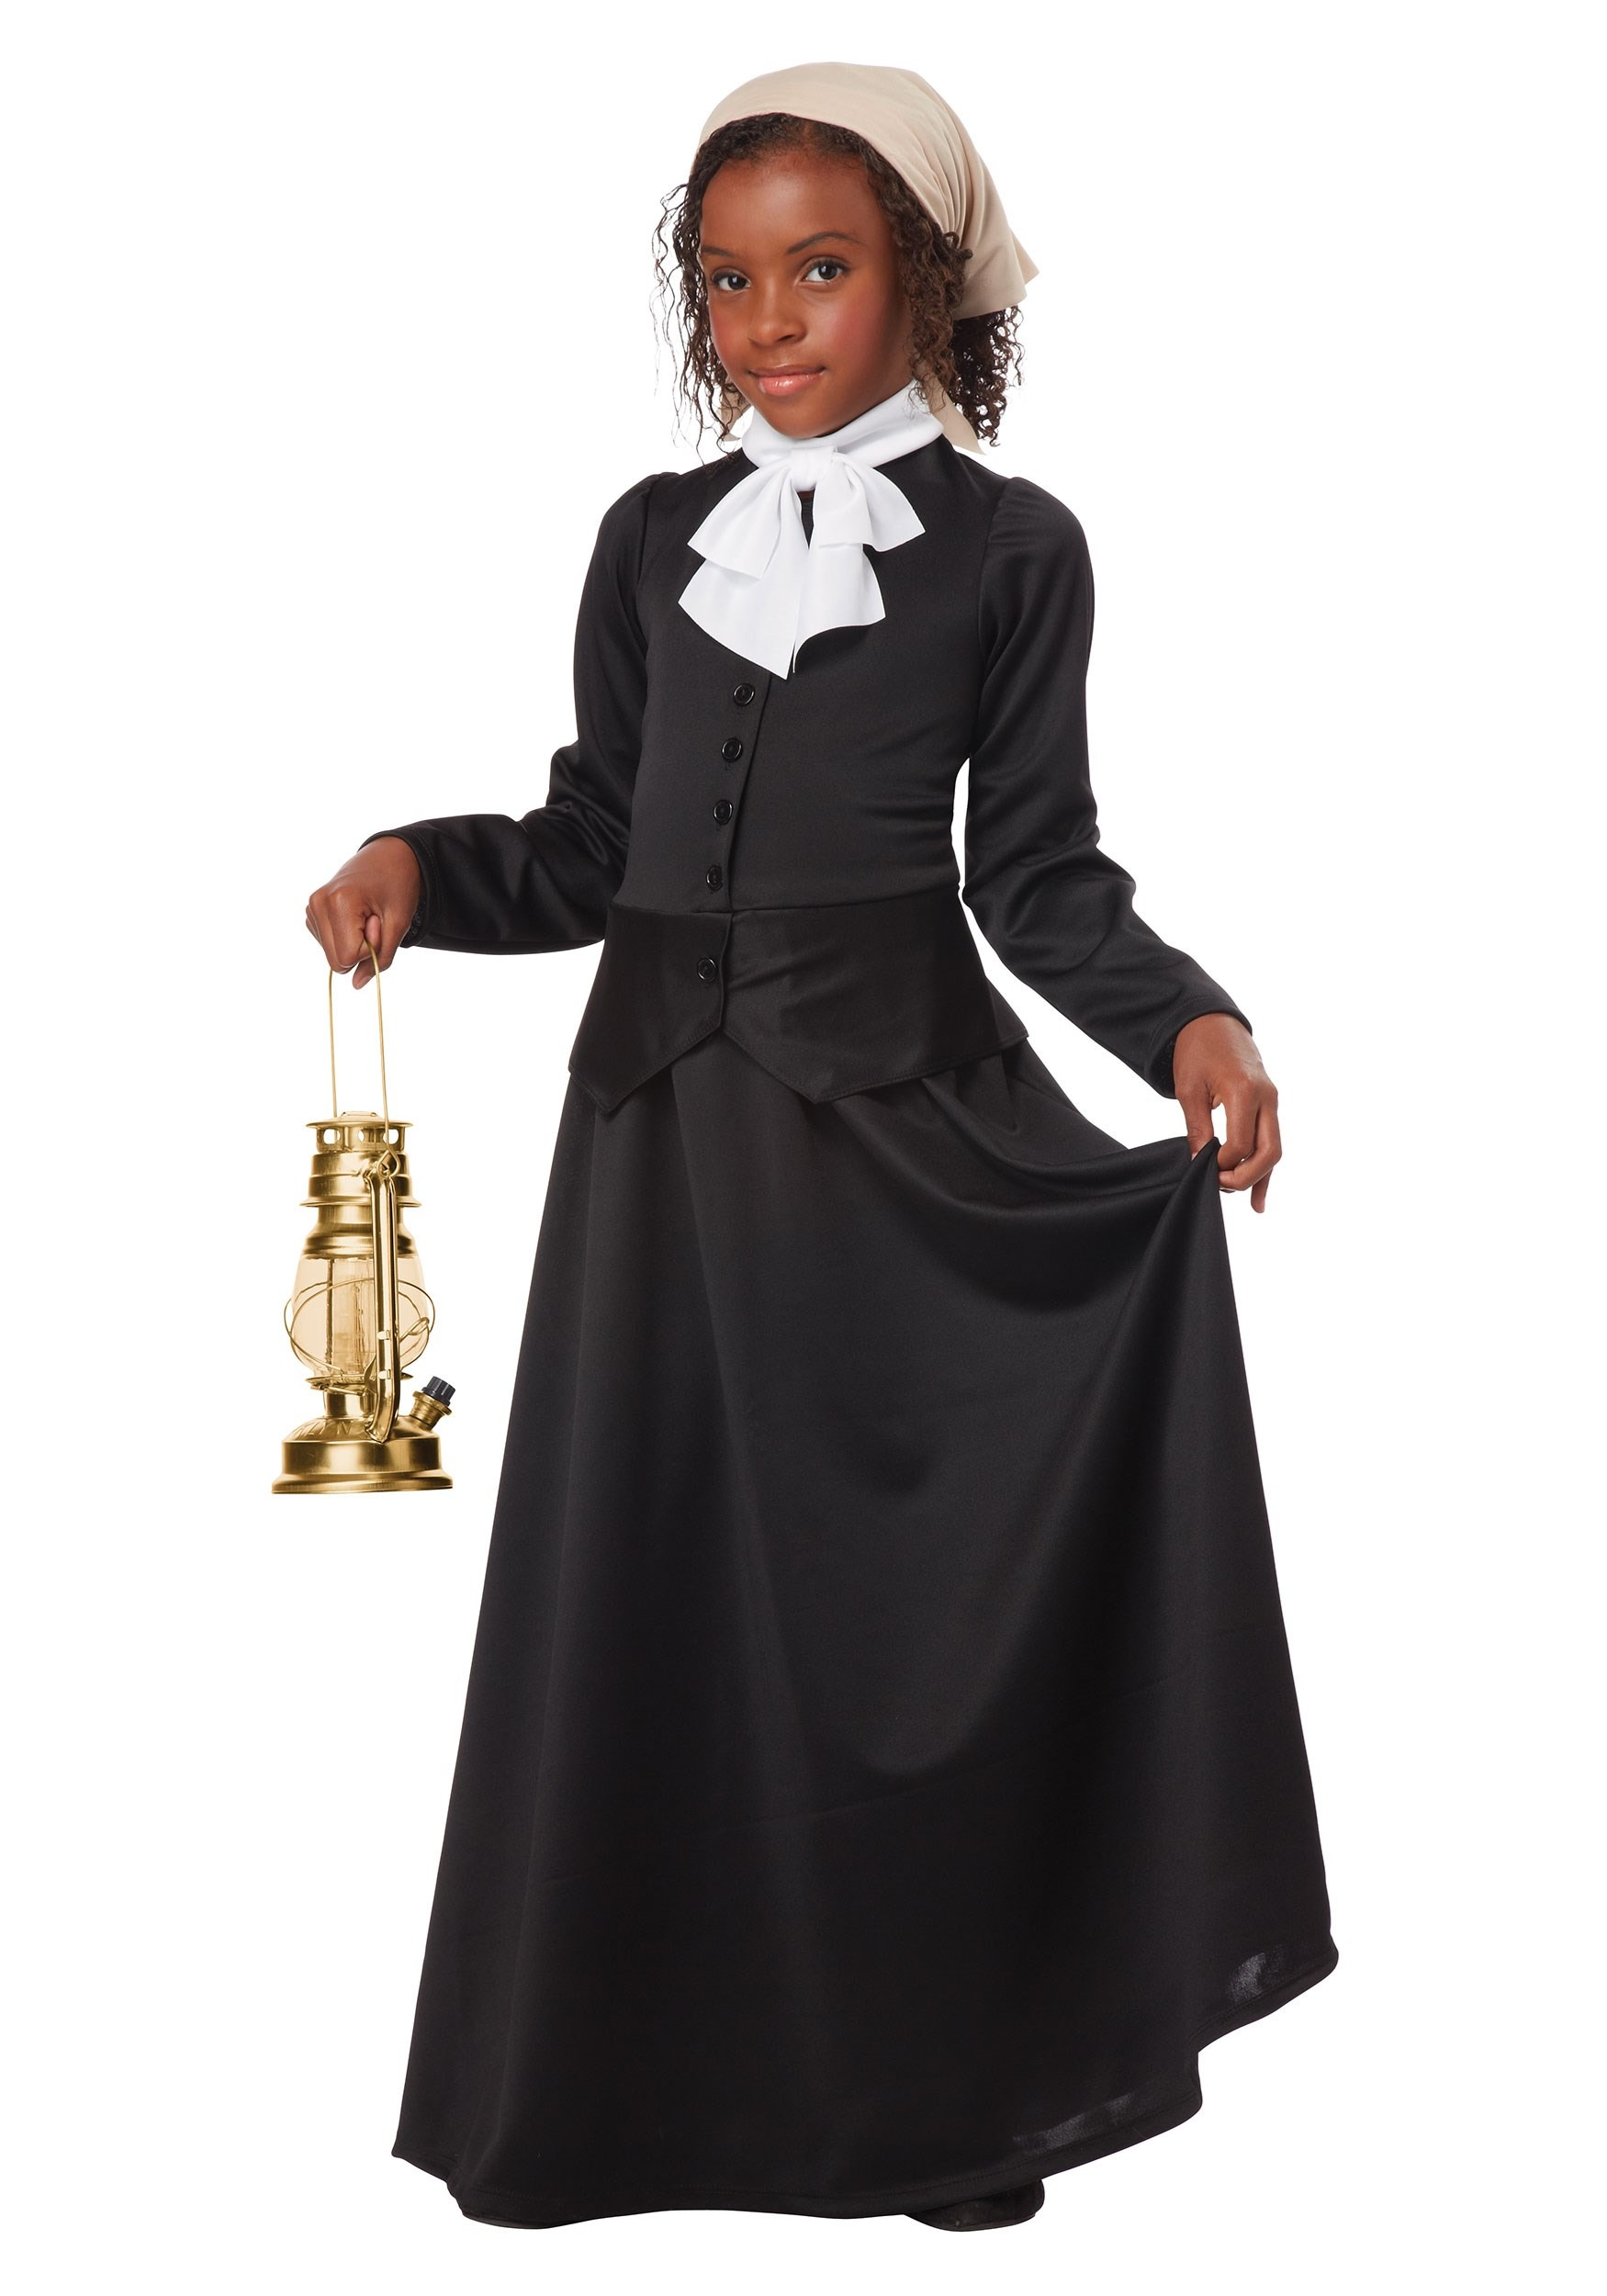 Harriet Tubman/Susan B. Anthony Costume for Girls